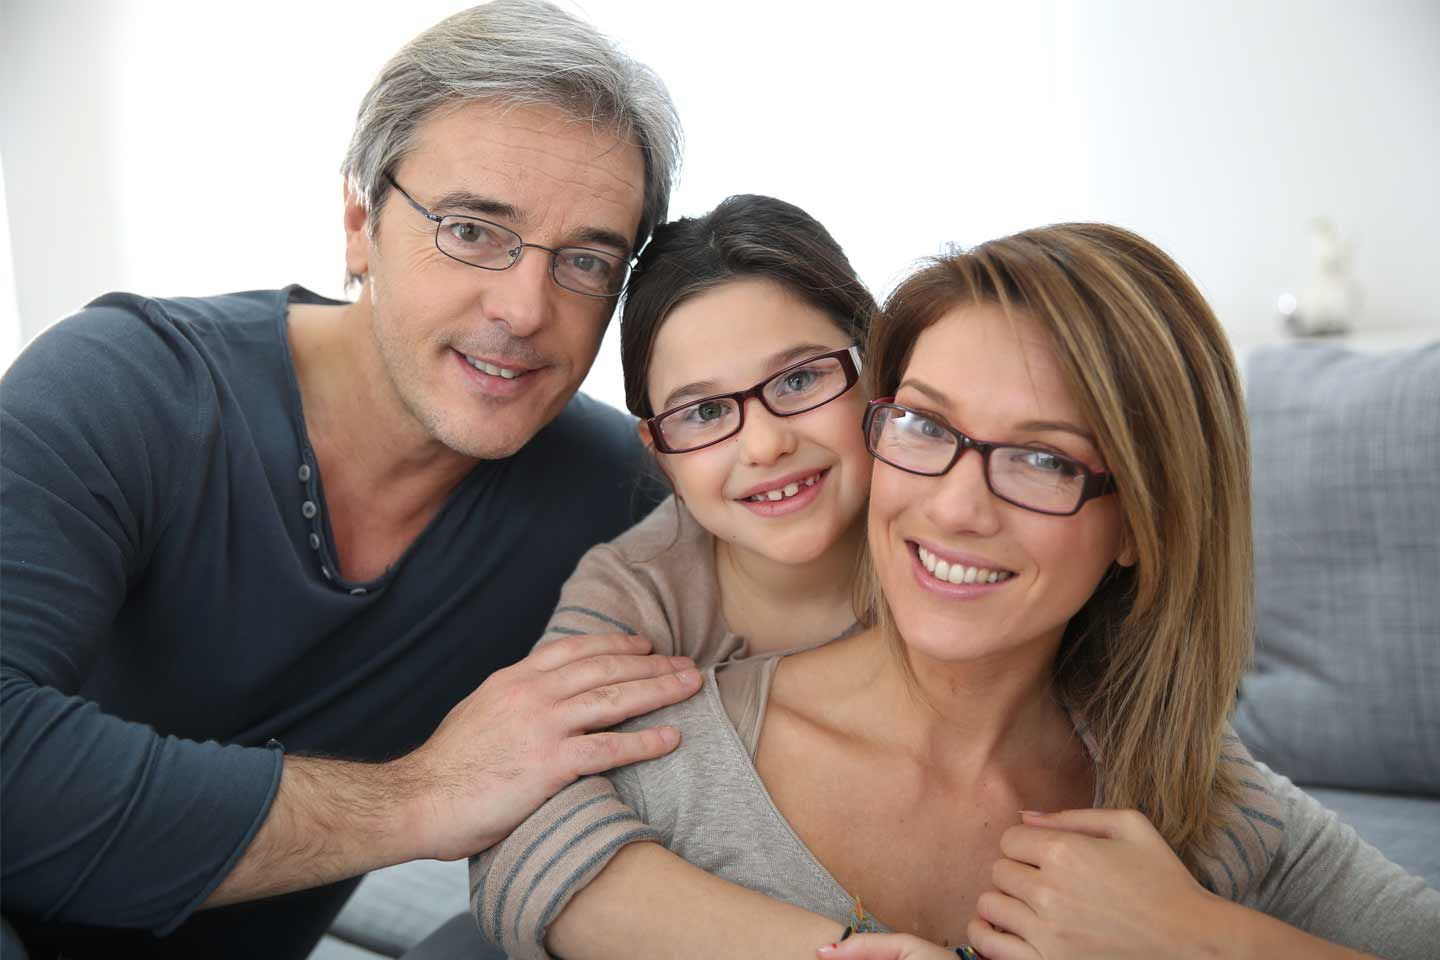 Do you have a Family History of Eye Diseases?